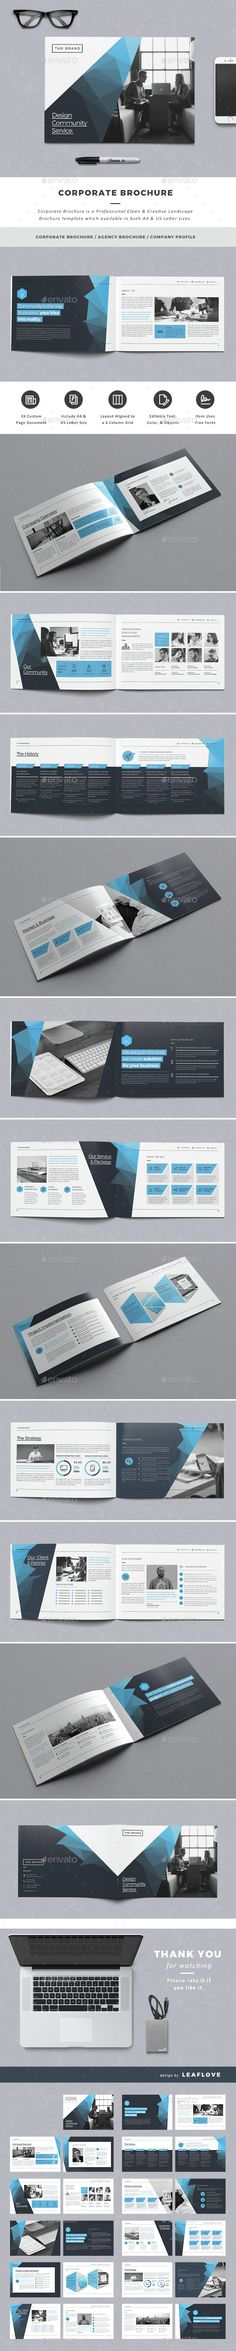 Corporate Brochure Template InDesign INDD. Download here: http://graphicriver.net/item/corporate-brochure/14957706?ref=ksioks